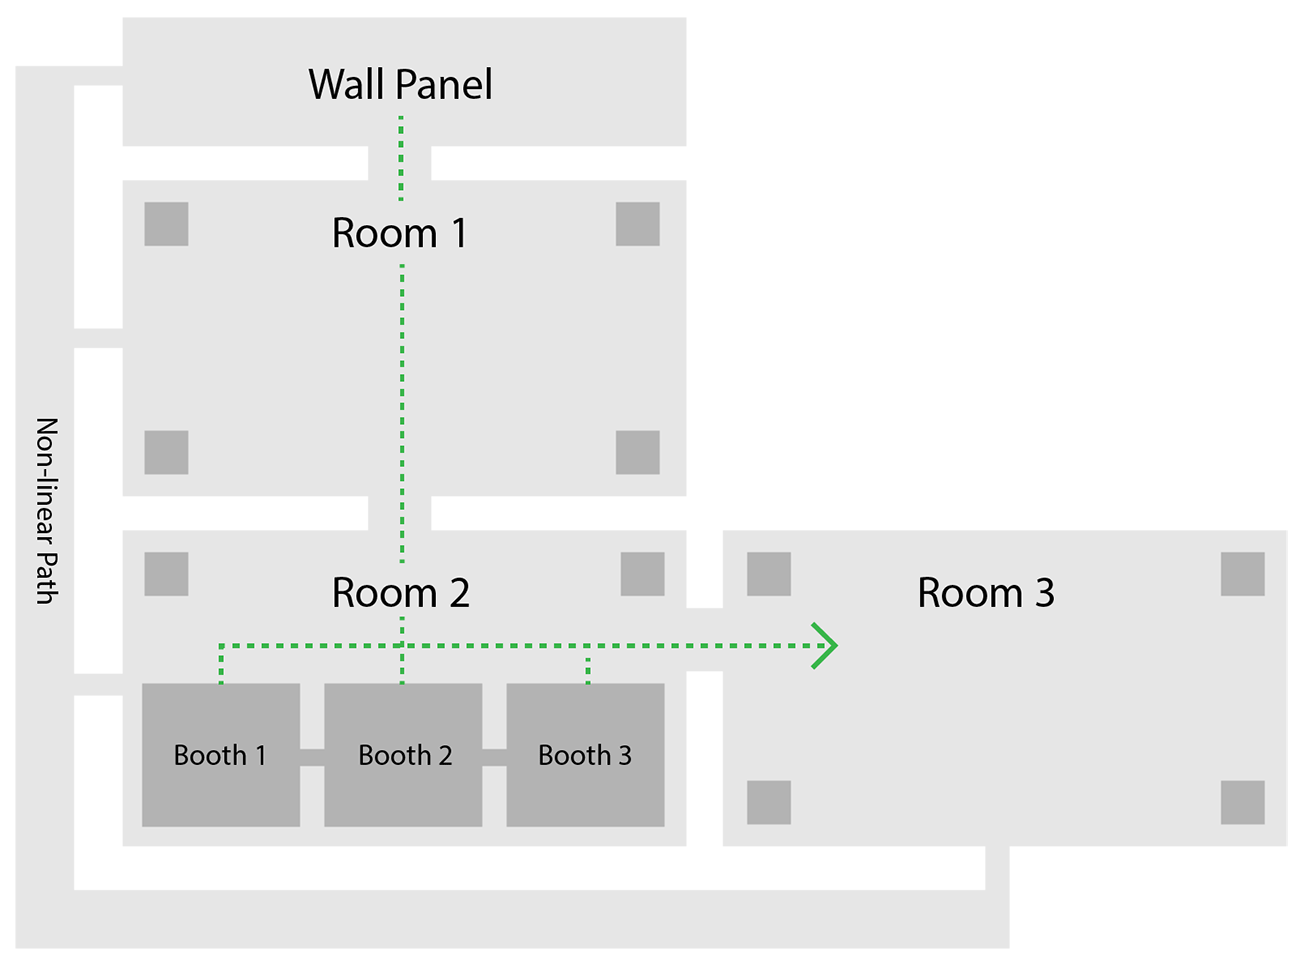 A graphic layout showing a wall panel at the top; room one below it; room two below that, containing three booths; and room three to the right of that.